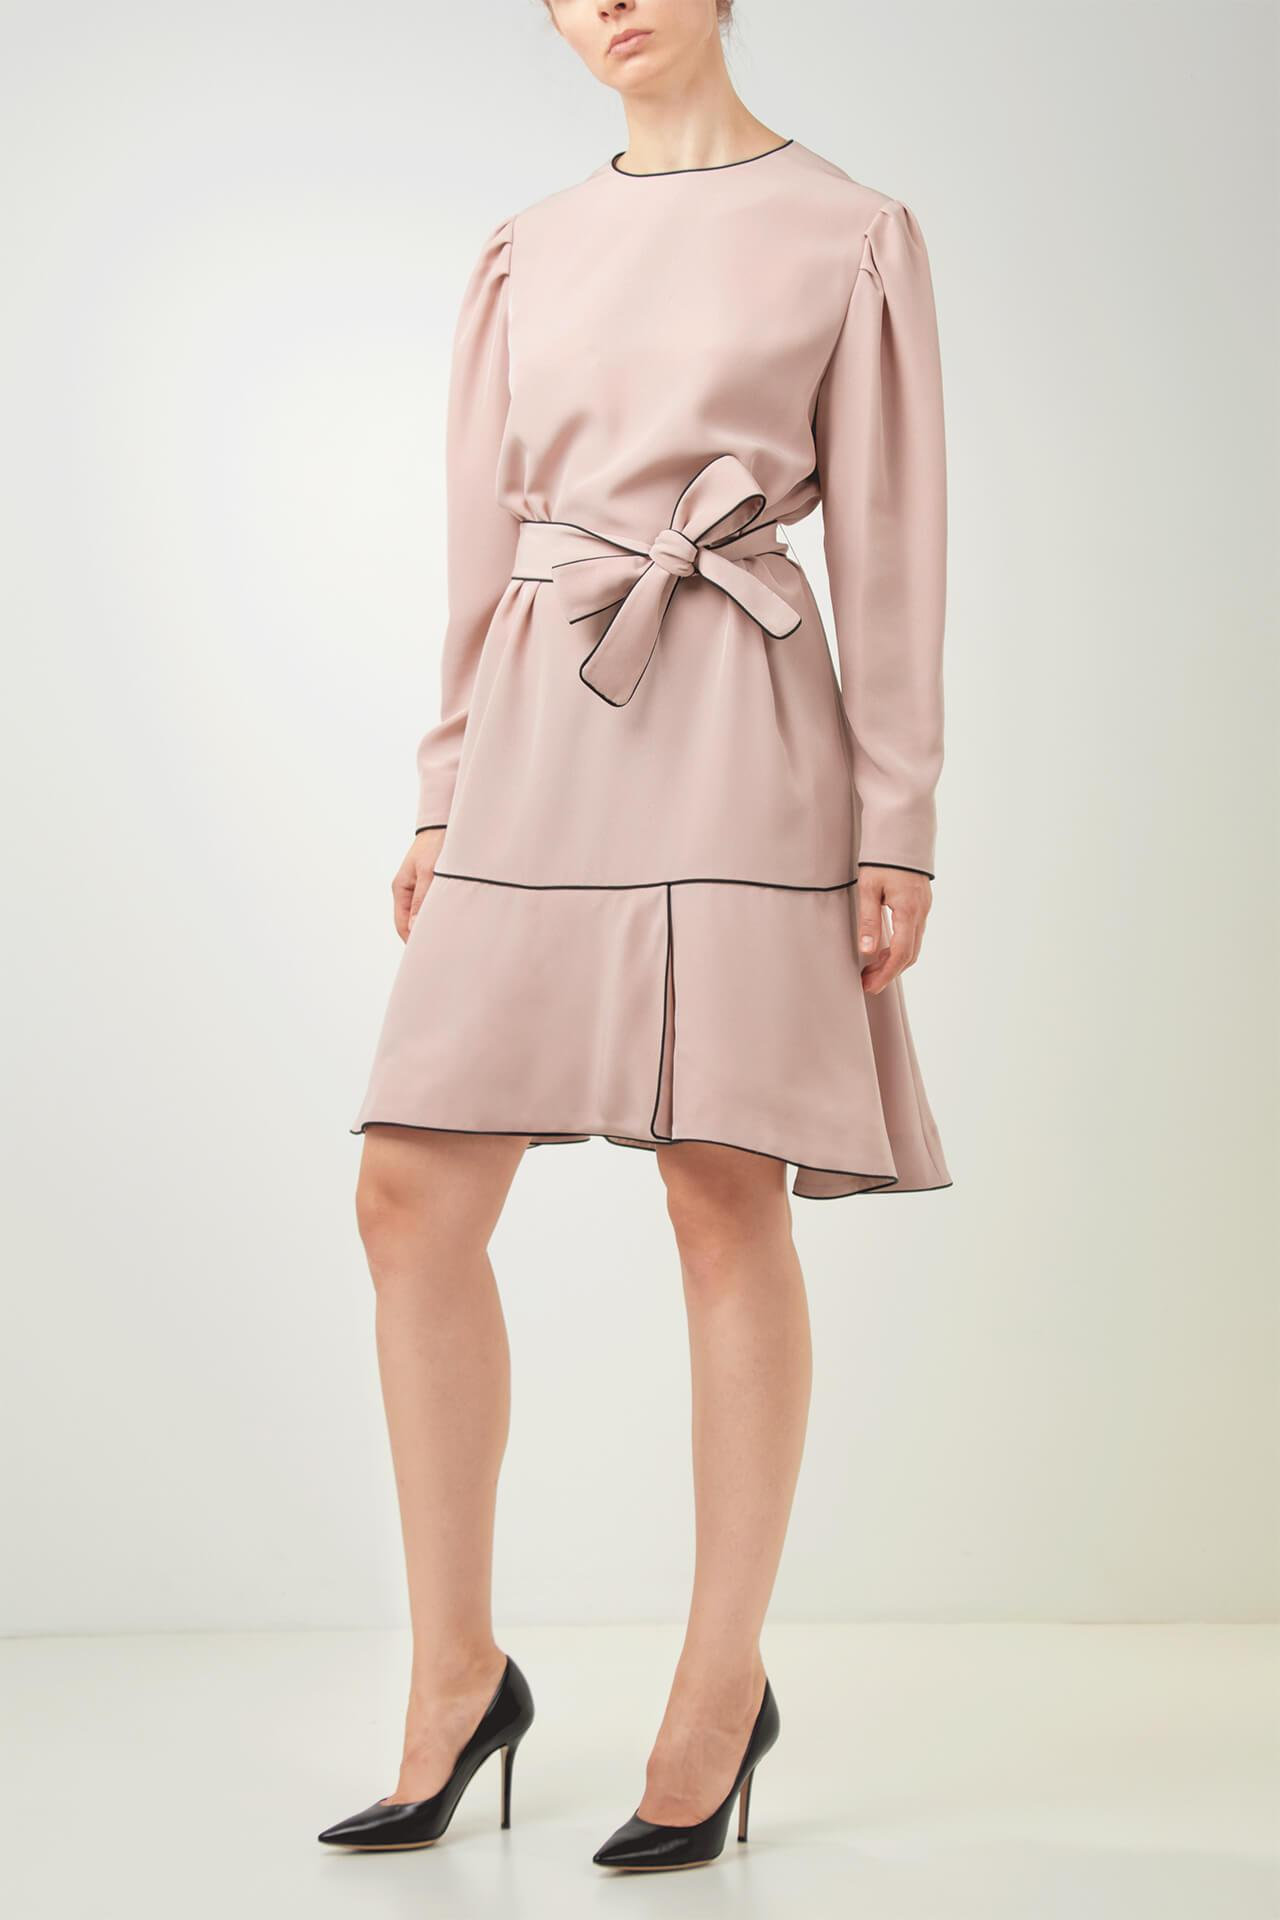 Outfit ideas for lawyers_pink dress